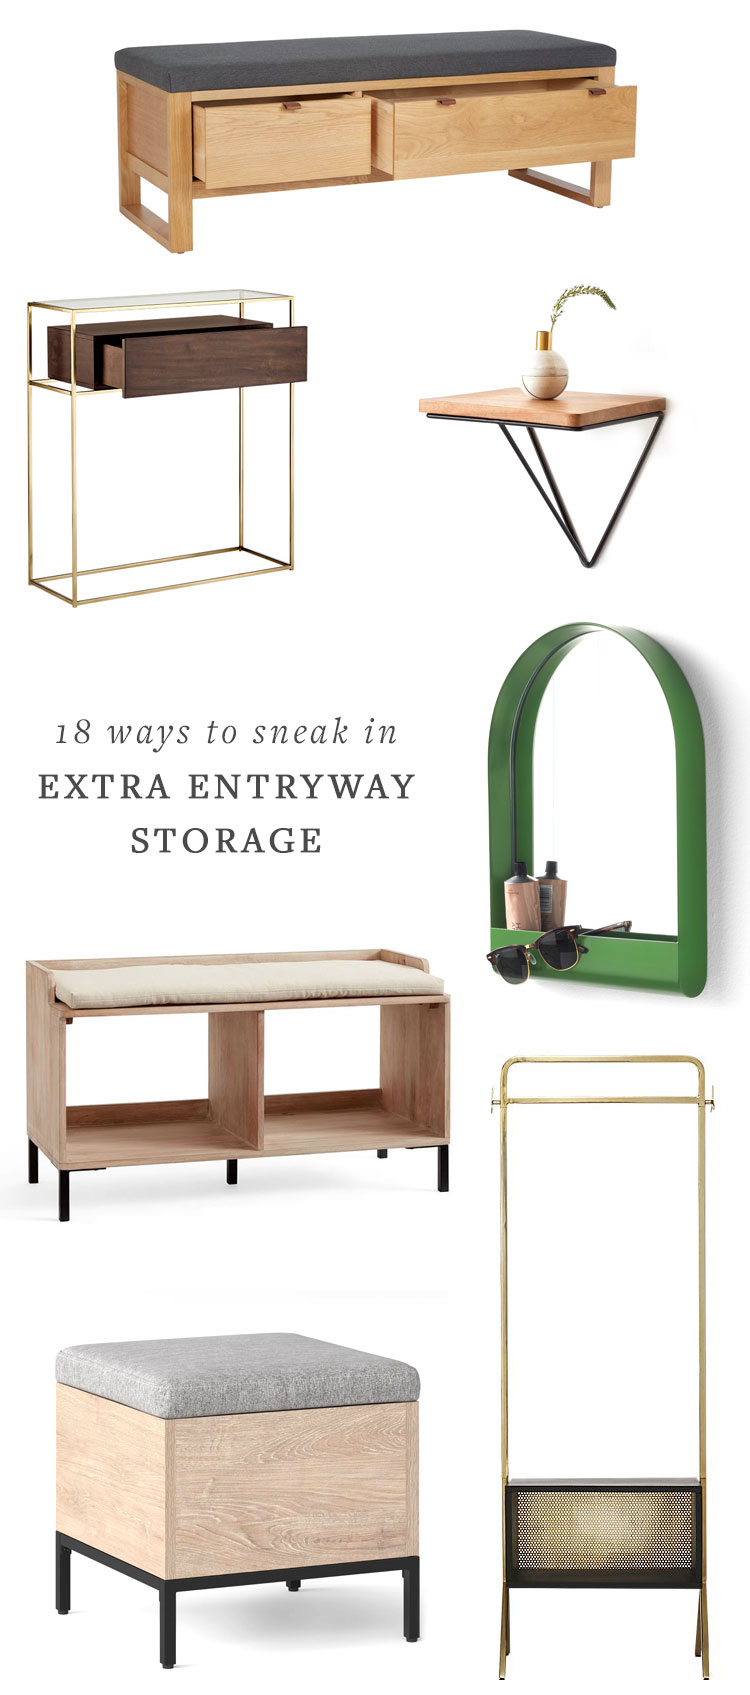 18 ways to sneak in extra entryway storage. perfect for preparing your home for holiday guests whether it's a tiny home or not! get all of the home decor shopping sources on jojotastic.com #smallspaces #tinyhome